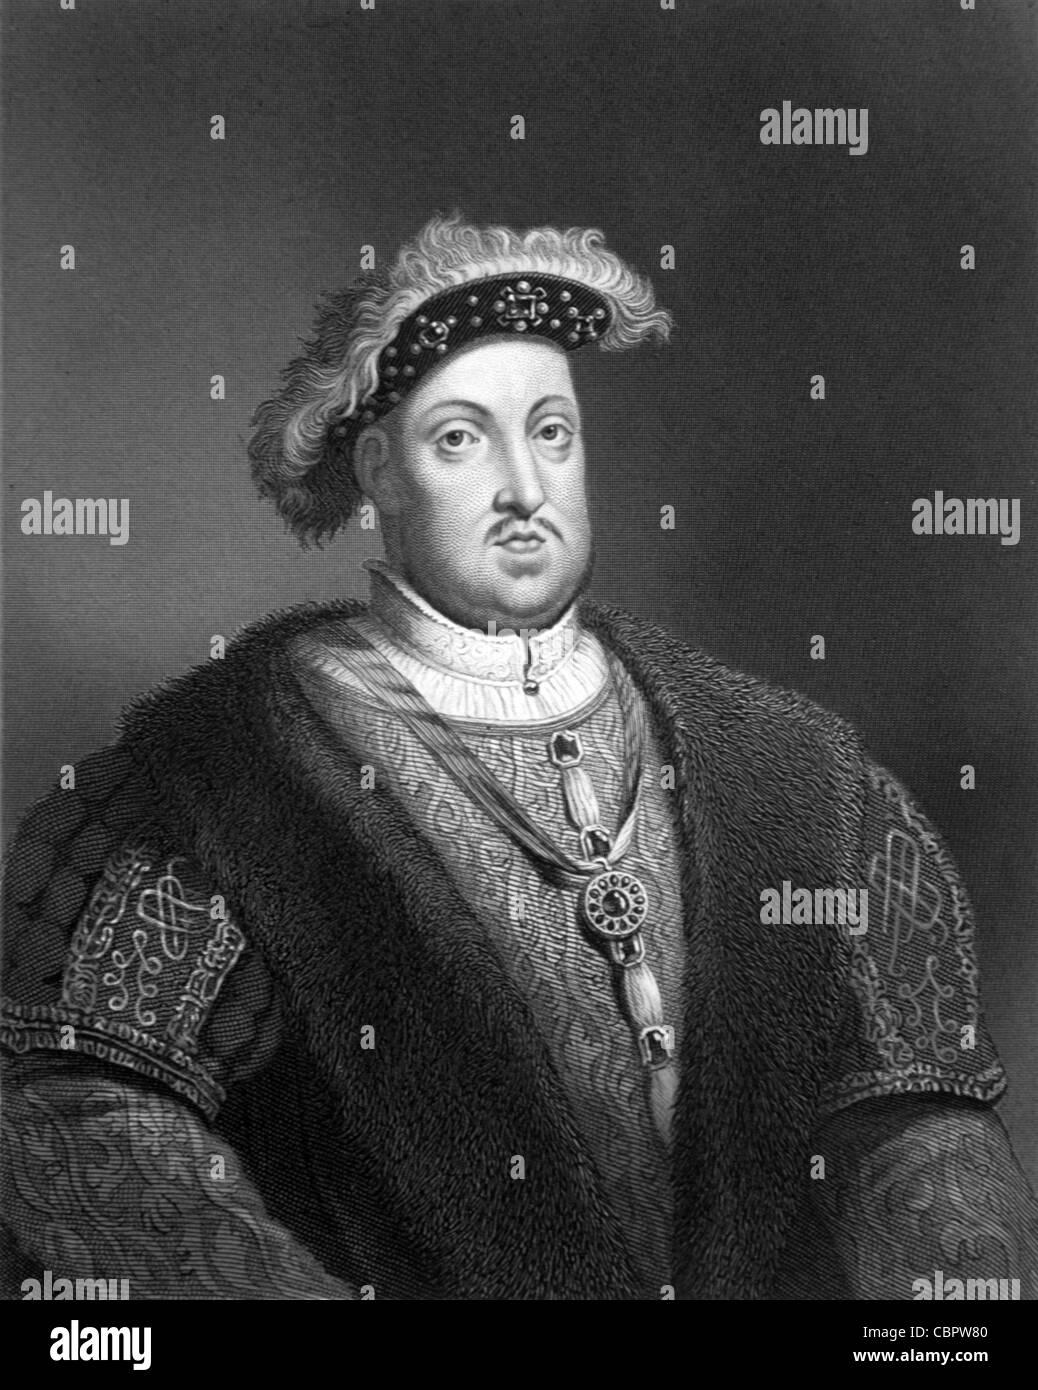 Henry VIII (1491-1547) Tudor King of England (1509-47) & Founder of the Church of England. Portrait. c19th Engraving - Stock Image